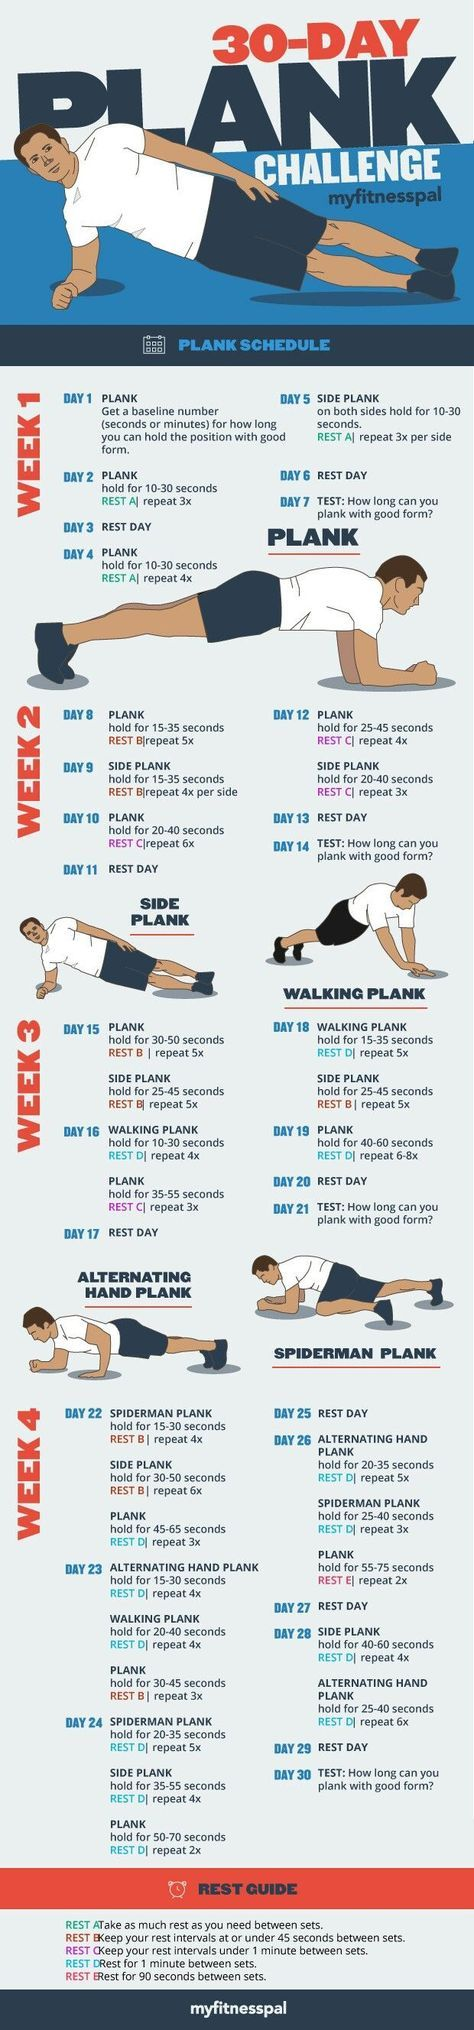 30 Day Plank Challenge! I did this challenge and i started seeing results in my tummy fat each week. I did have a little difficulty doing the spider man plank so i just substituted it with each plank before that one. I challenge each of you to challenge yourself and see if it works for you as well! I was also dieting at the time, but (if you're trying to lose weight) who isn't?! I hope this helps you out as much as it has helped me. I received it in an email from MyFitnessPal. It's a wonderf #fitnesschallenges